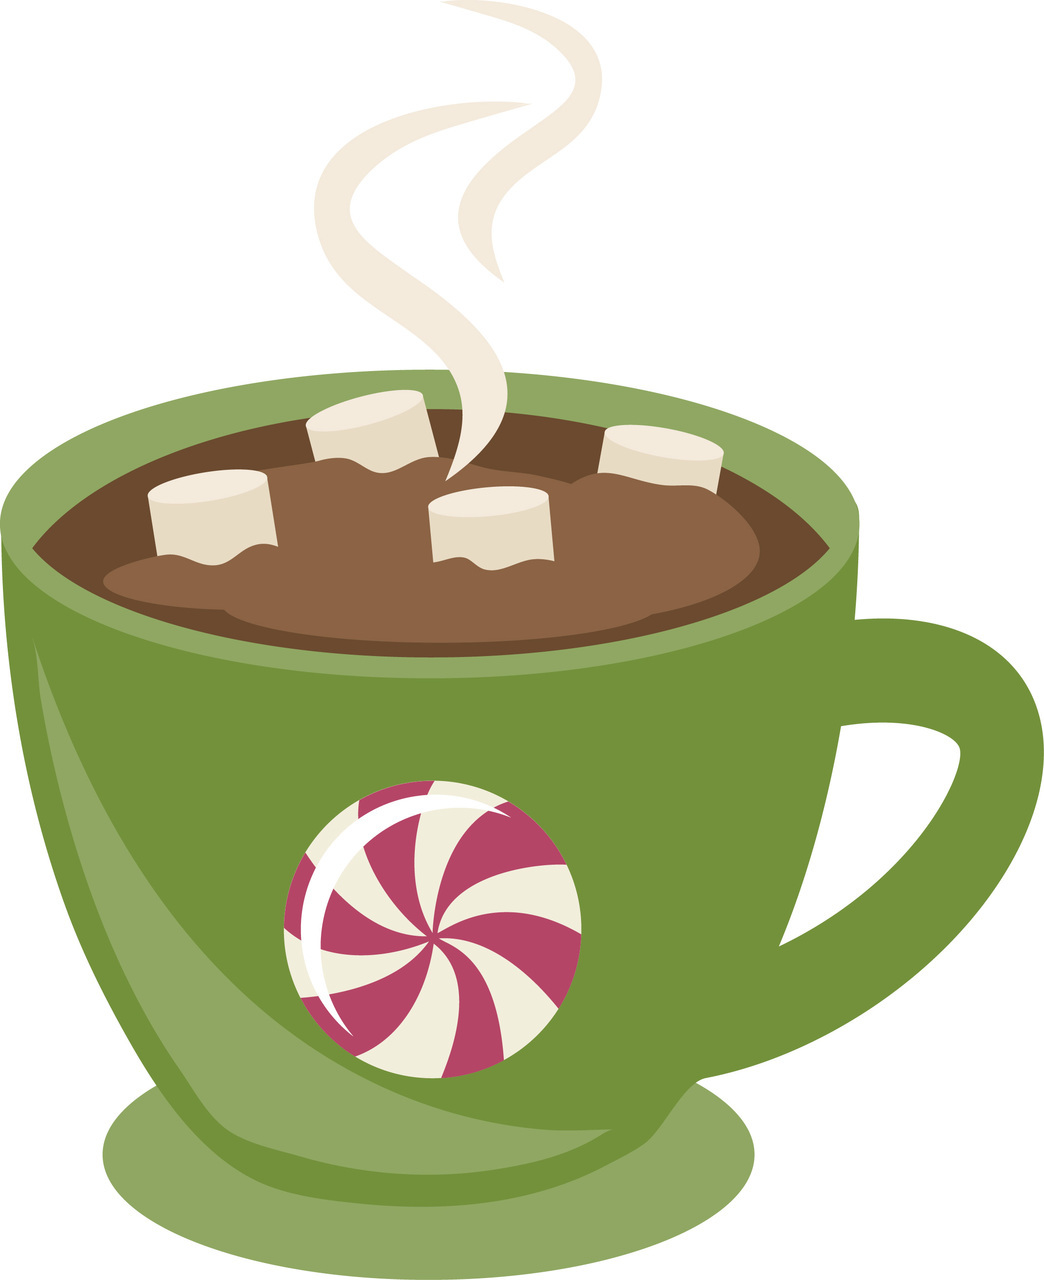 chocolate clipartlook. Hot clipart hot cocoa